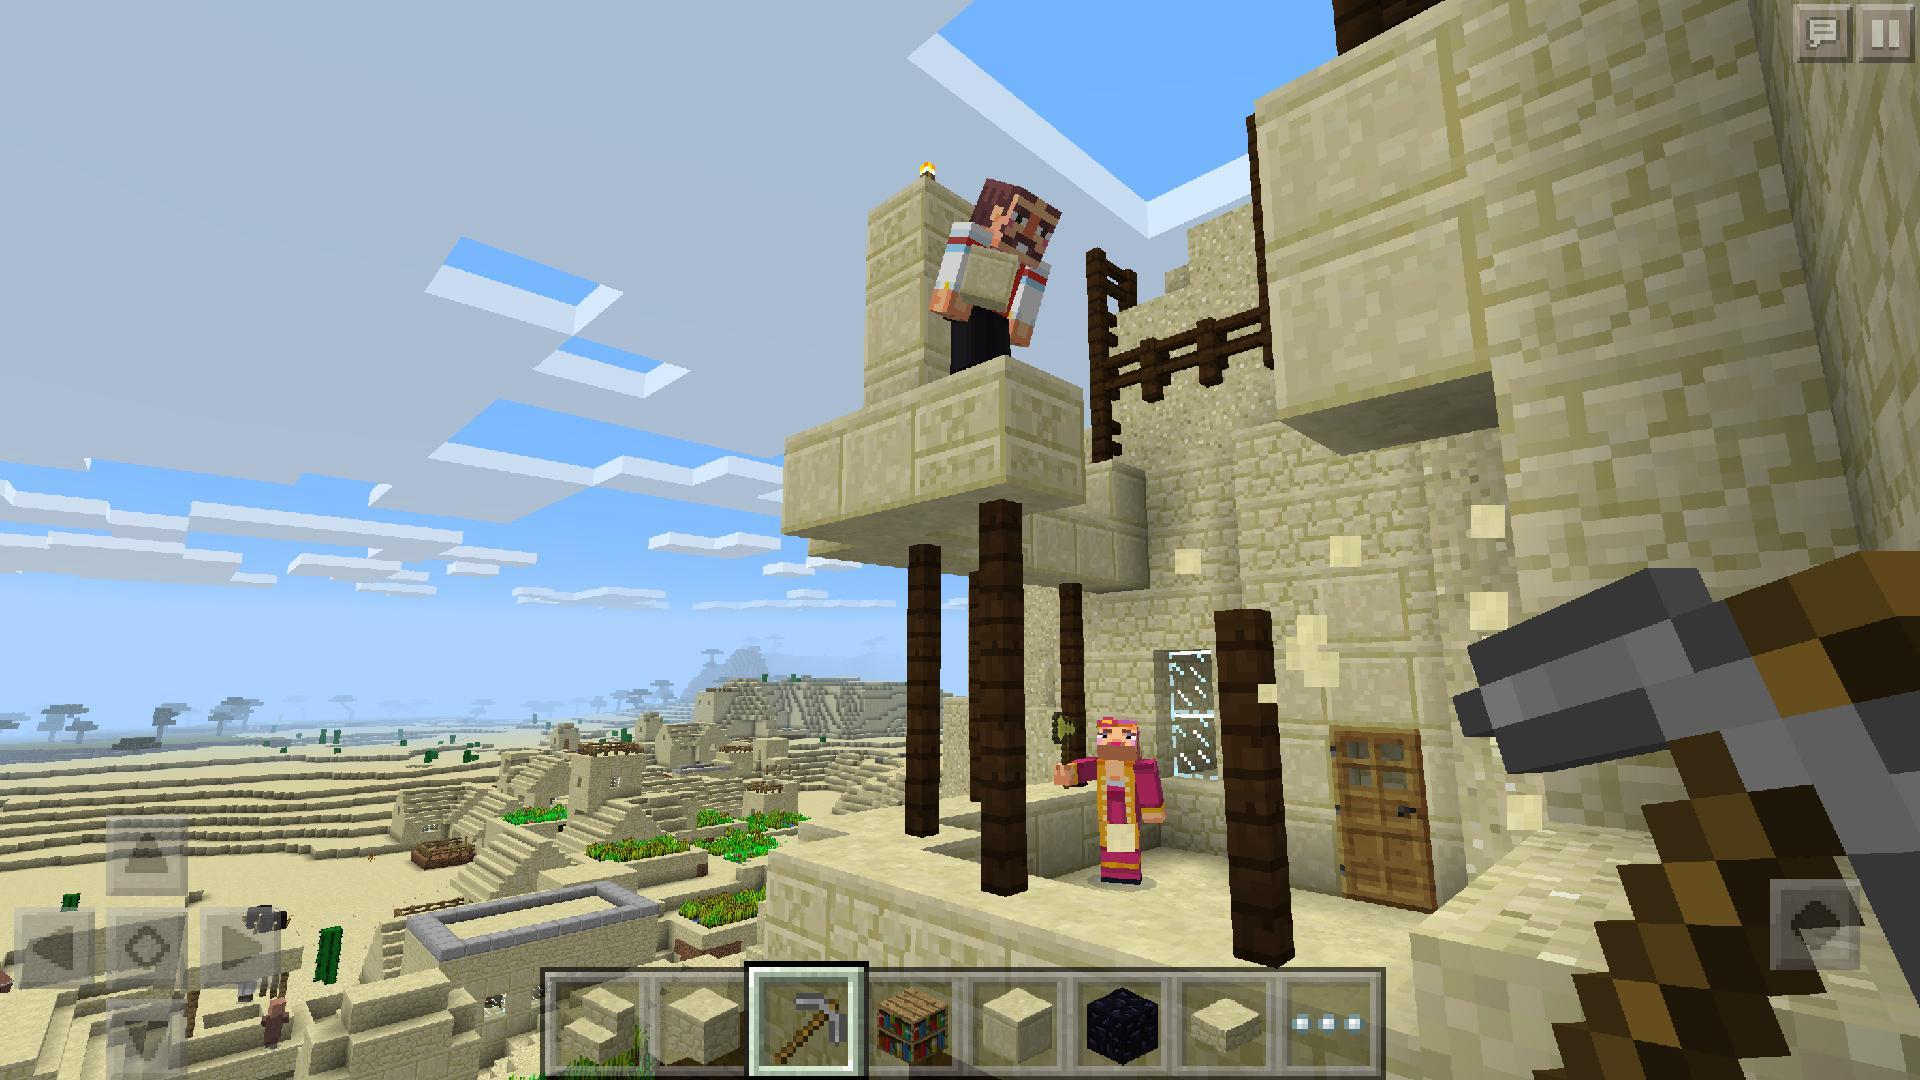 minecraft 1.1 0.8 apk download